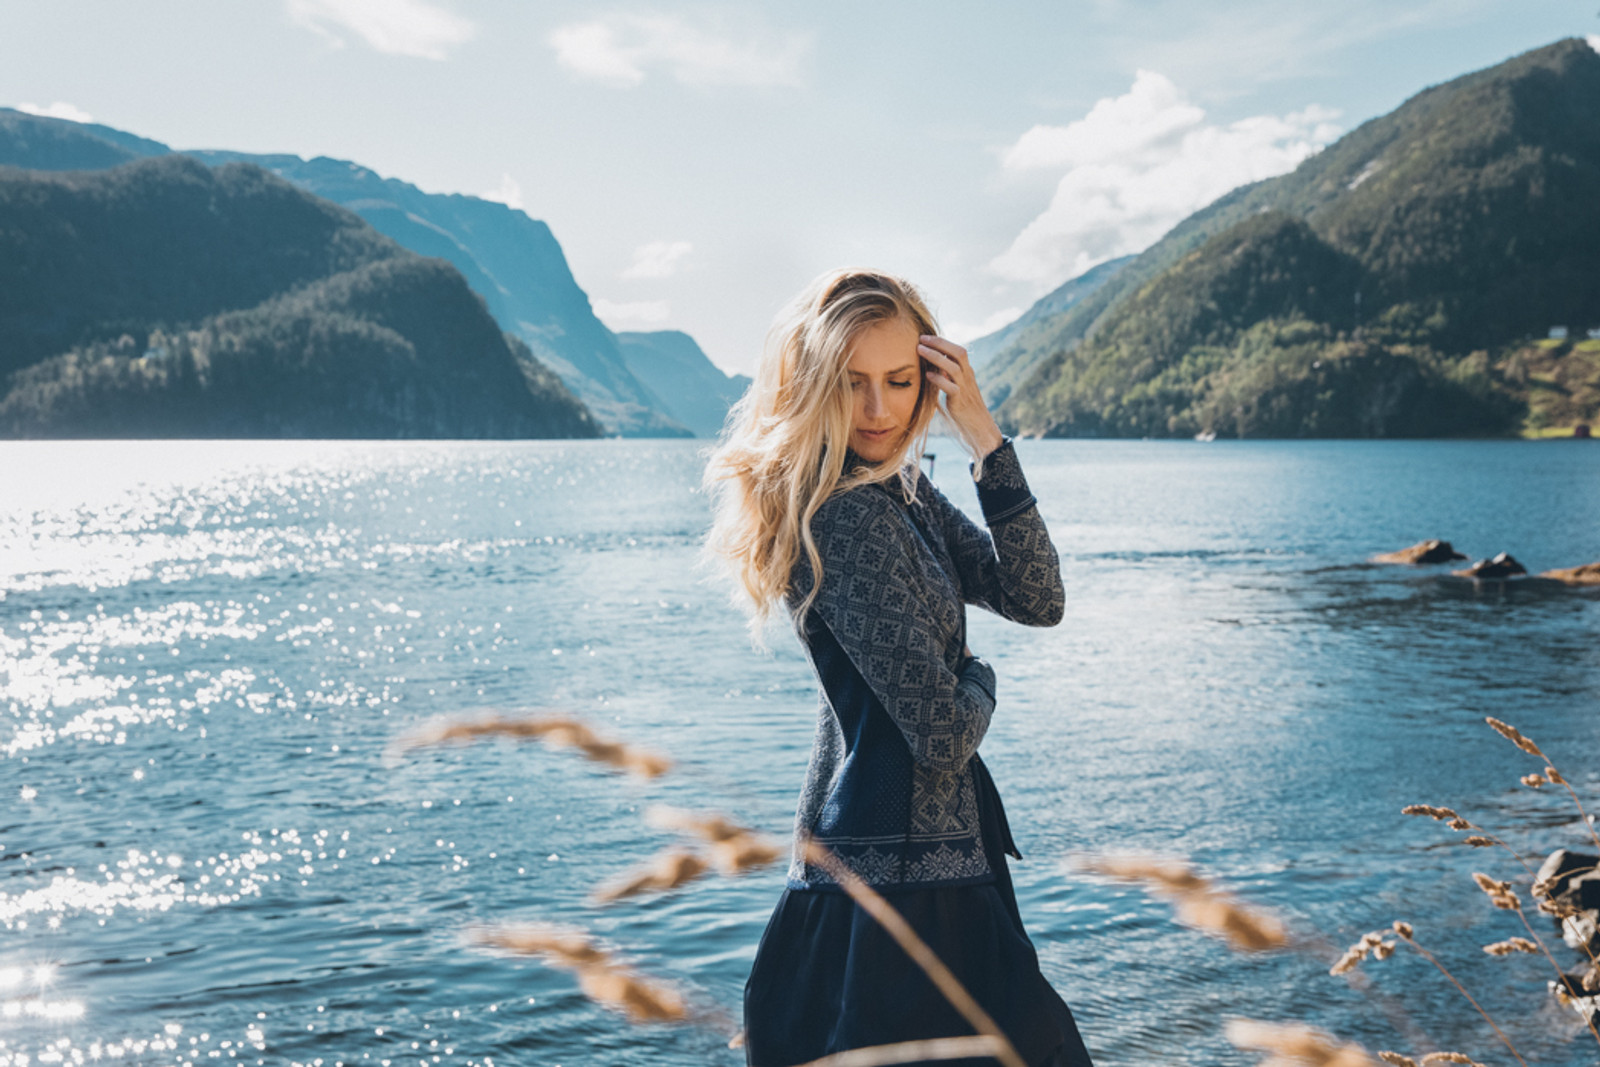 Woman by lakeshore wearing Dale of Norway's Christiania Ladies Cardigan in Electric Storm/Smoke, 81951-H